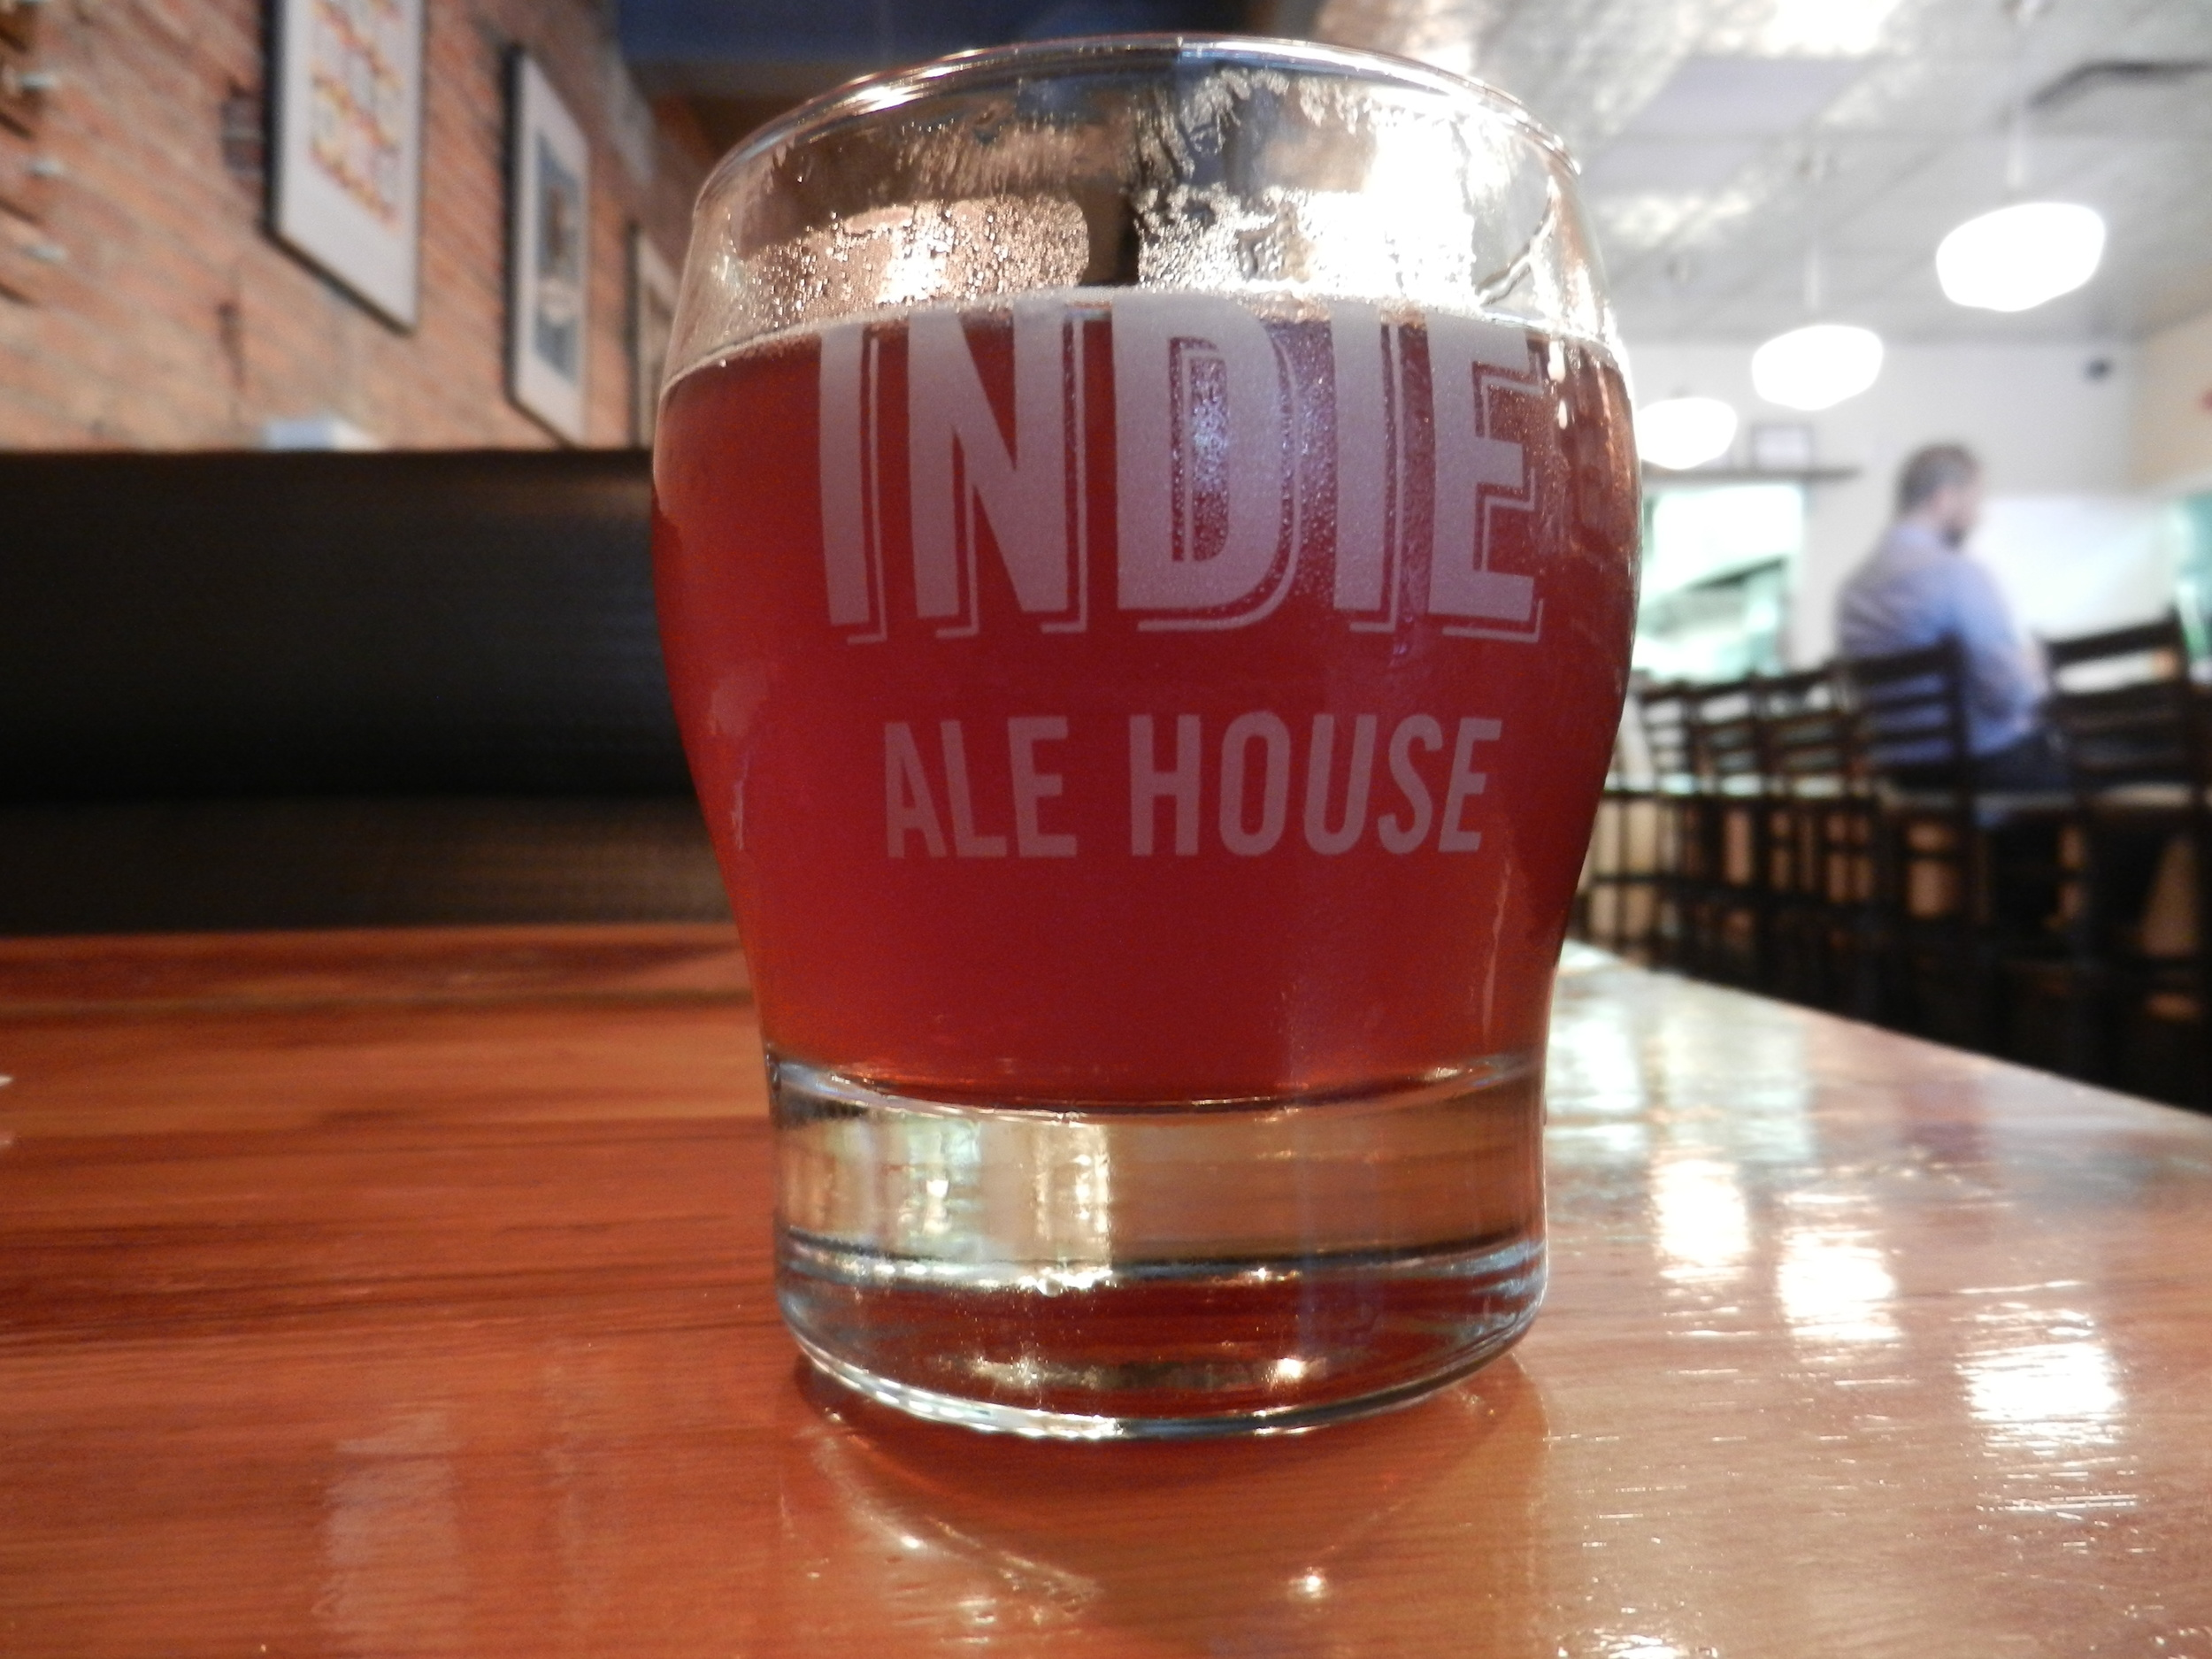 Indie Ale House, photo of a beer